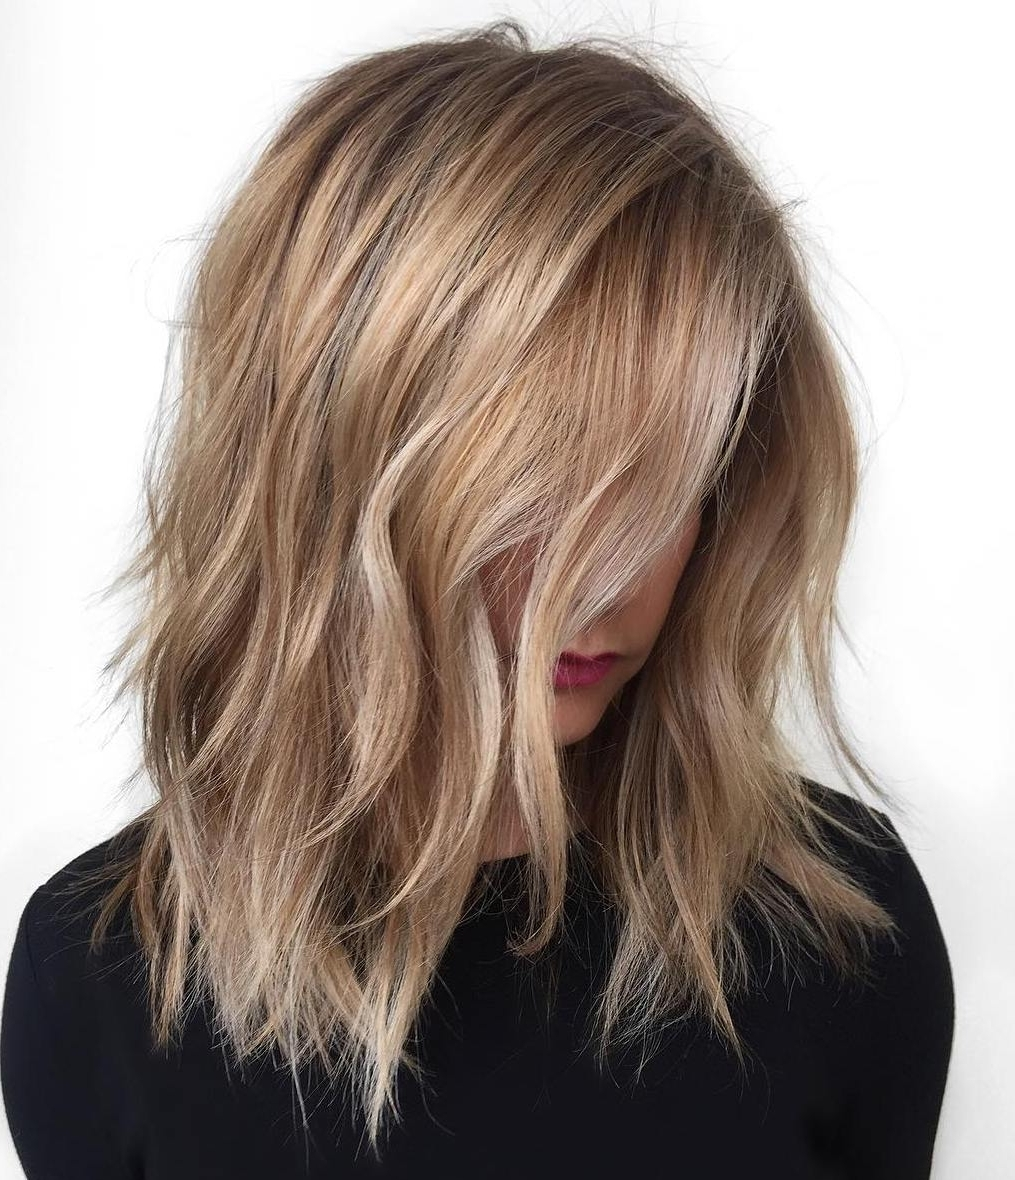 40 Styles With Medium Blonde Hair For Major Inspiration With Regard To Well Known Tortoiseshell Straight Blonde Hairstyles (View 3 of 20)